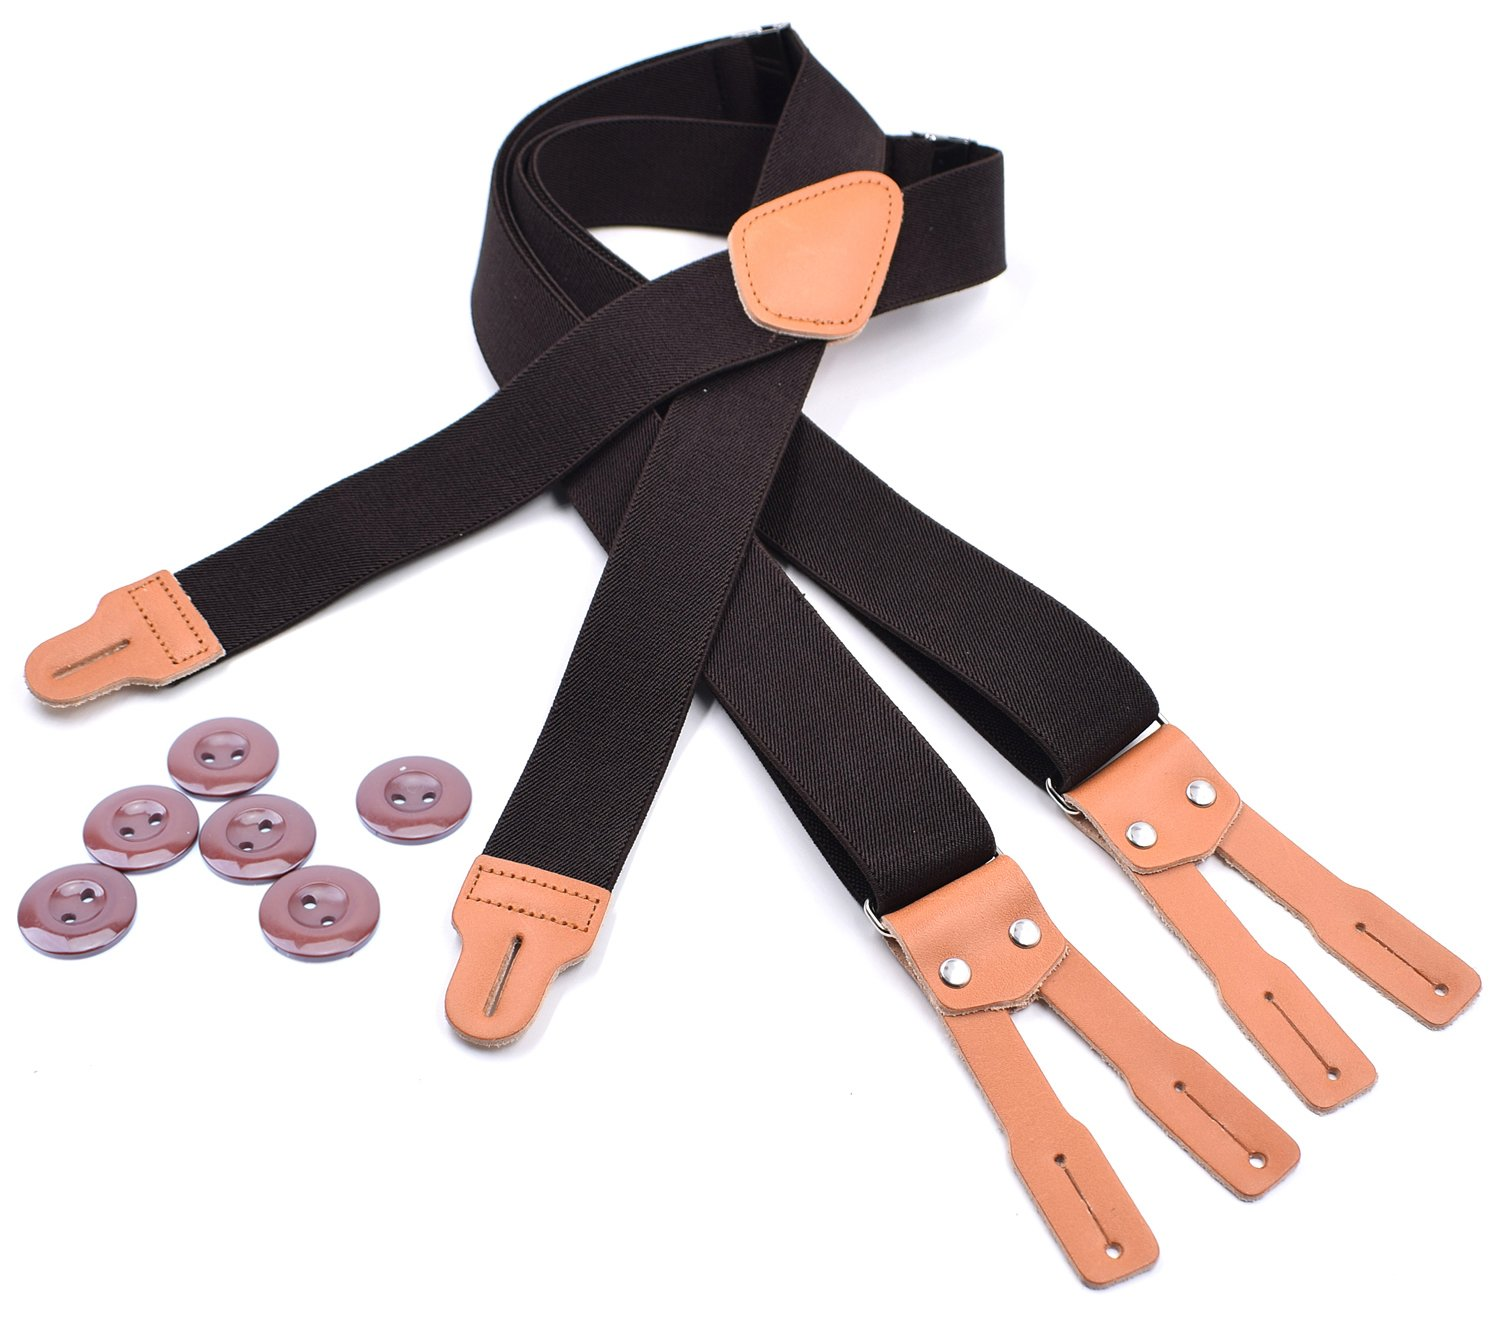 Men's Classic High Elasticity Adjustable Braces X-Back Suspenders with Leather Button End and Strap & Heavy Duty(Coffee)